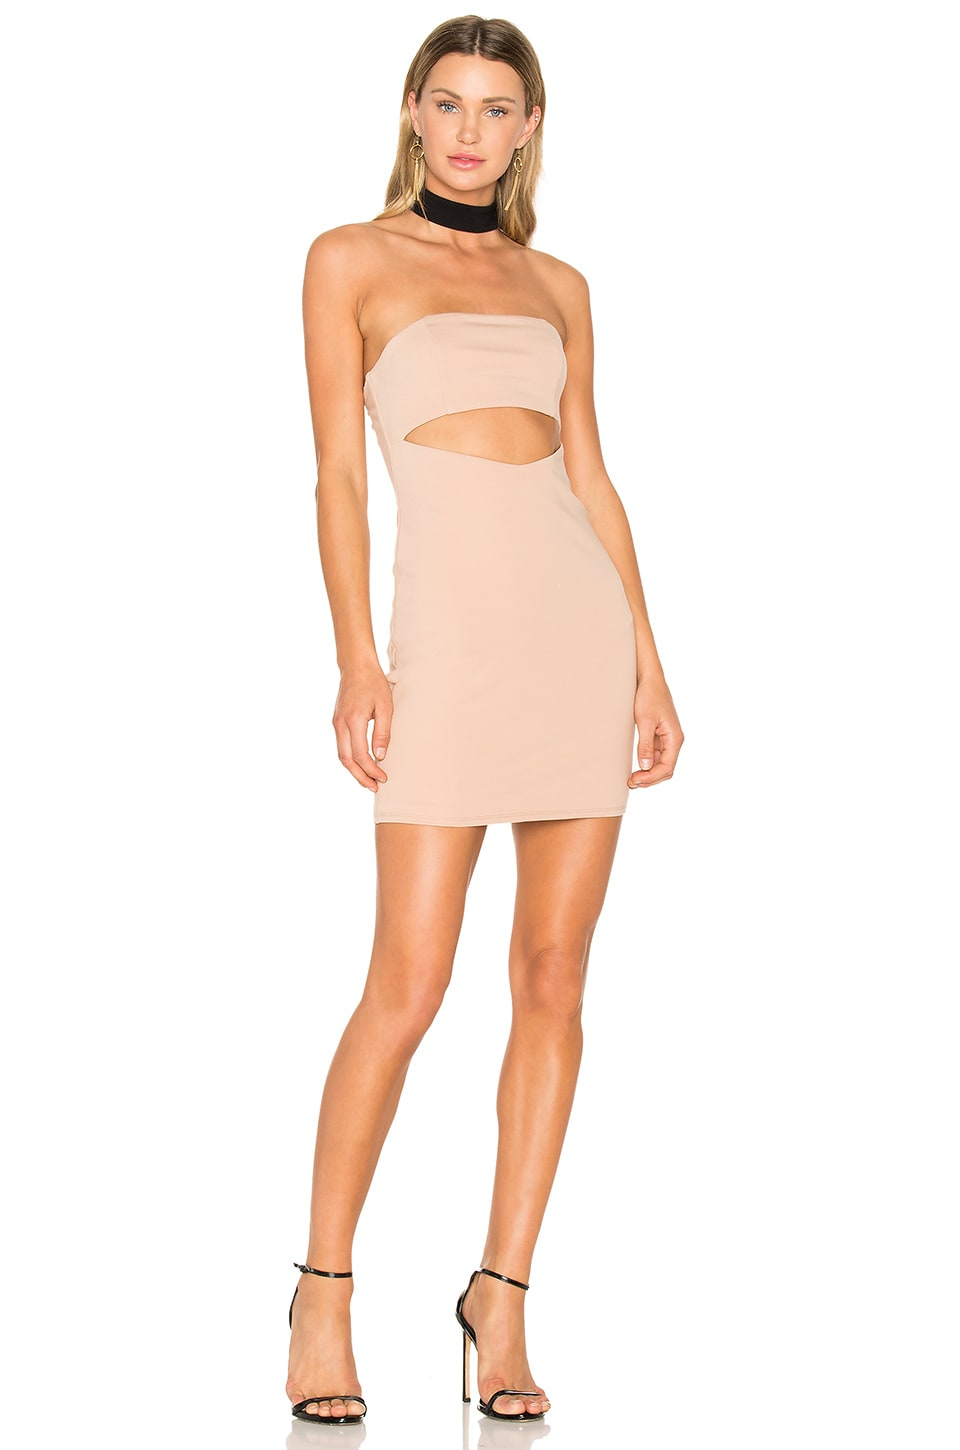 x REVOLVE Attraction Dress by NBD